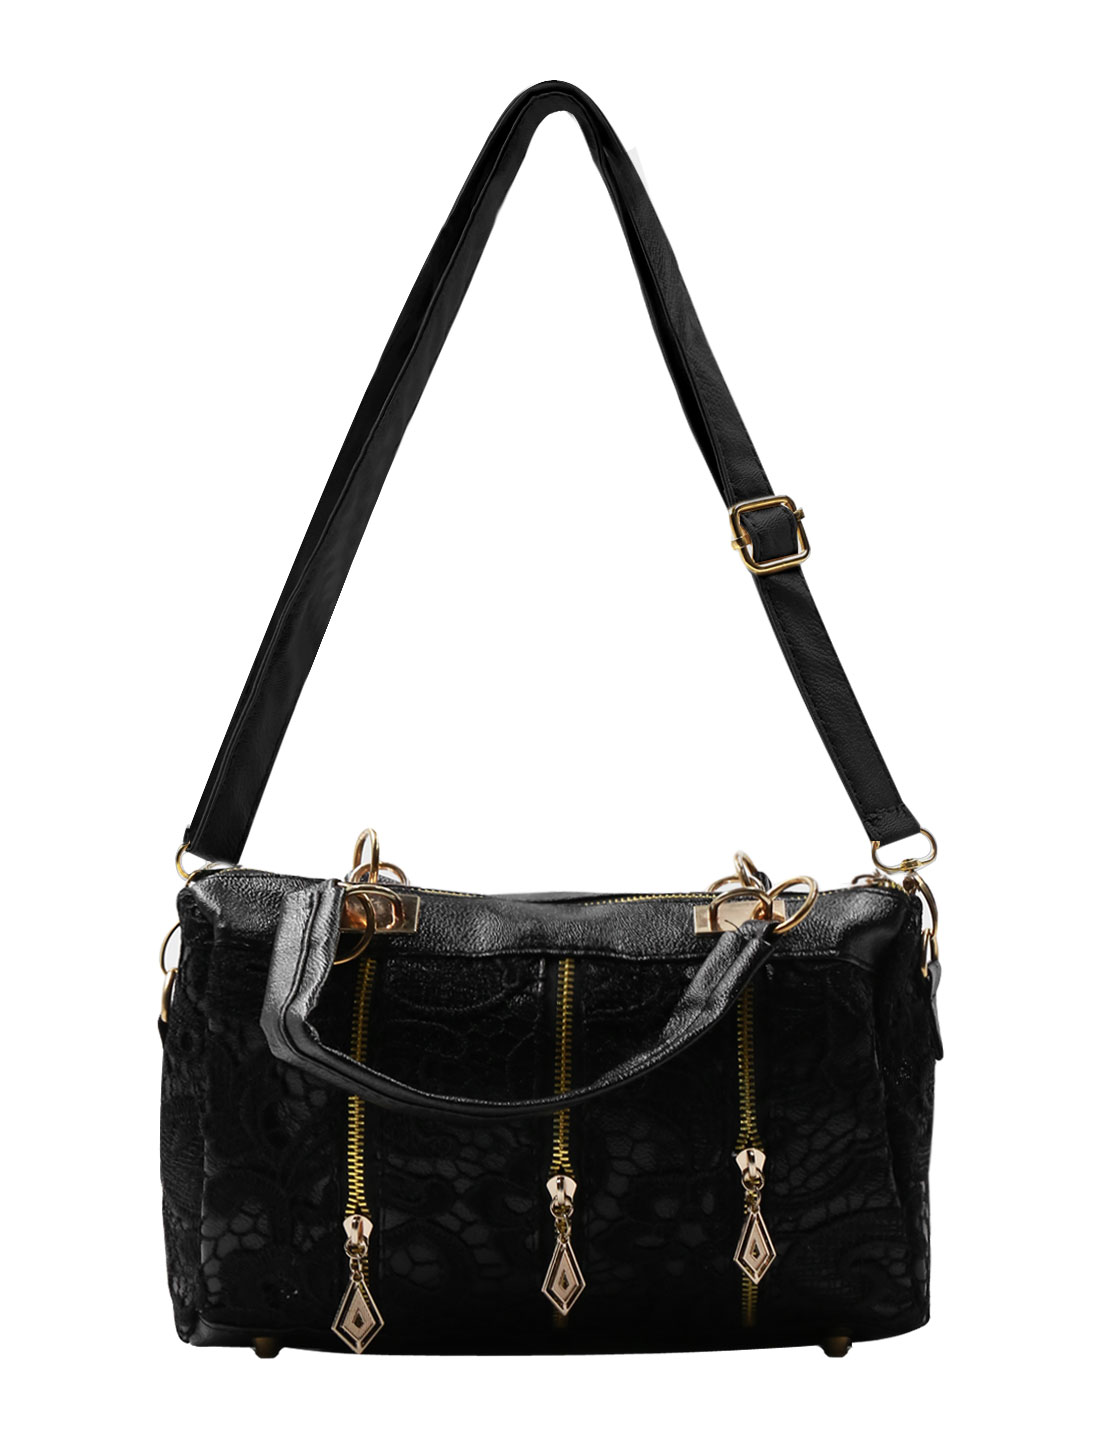 Ladies Floral Design Lace Panel Textured Faux Leather Tote Bag Black